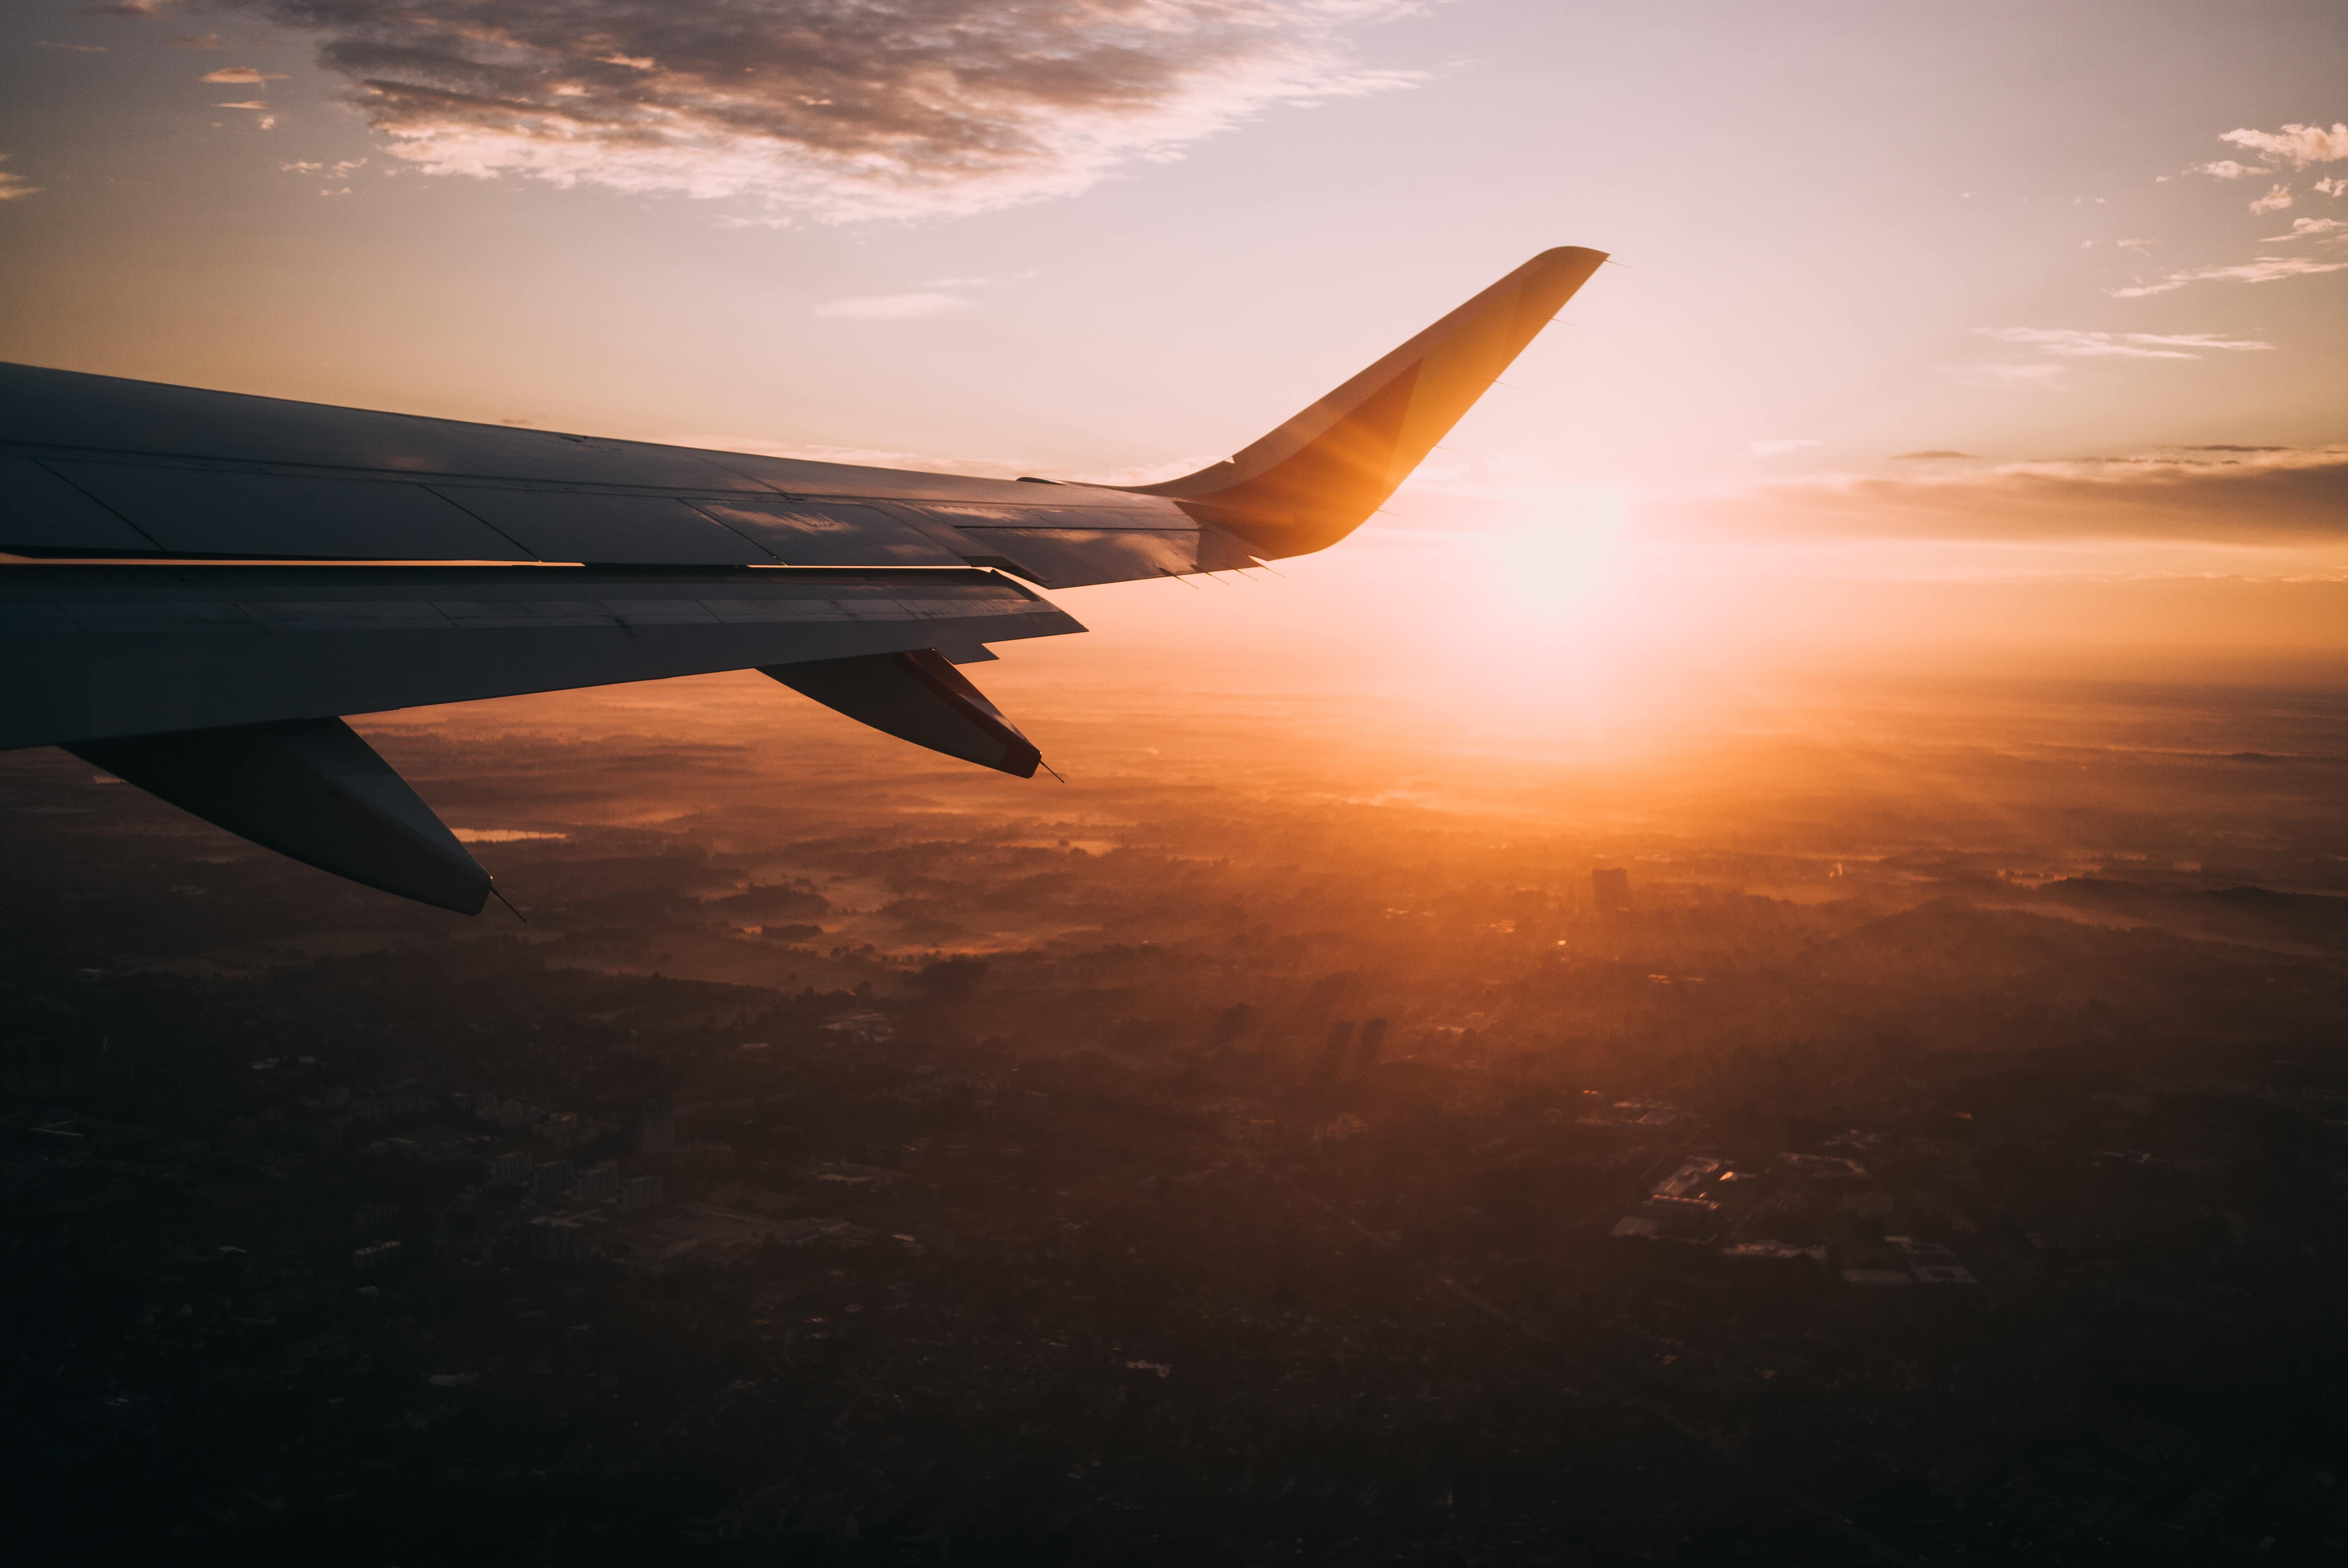 Group Travel, Flight during Golden Hour, Photo by Nils Nedel on Unsplash